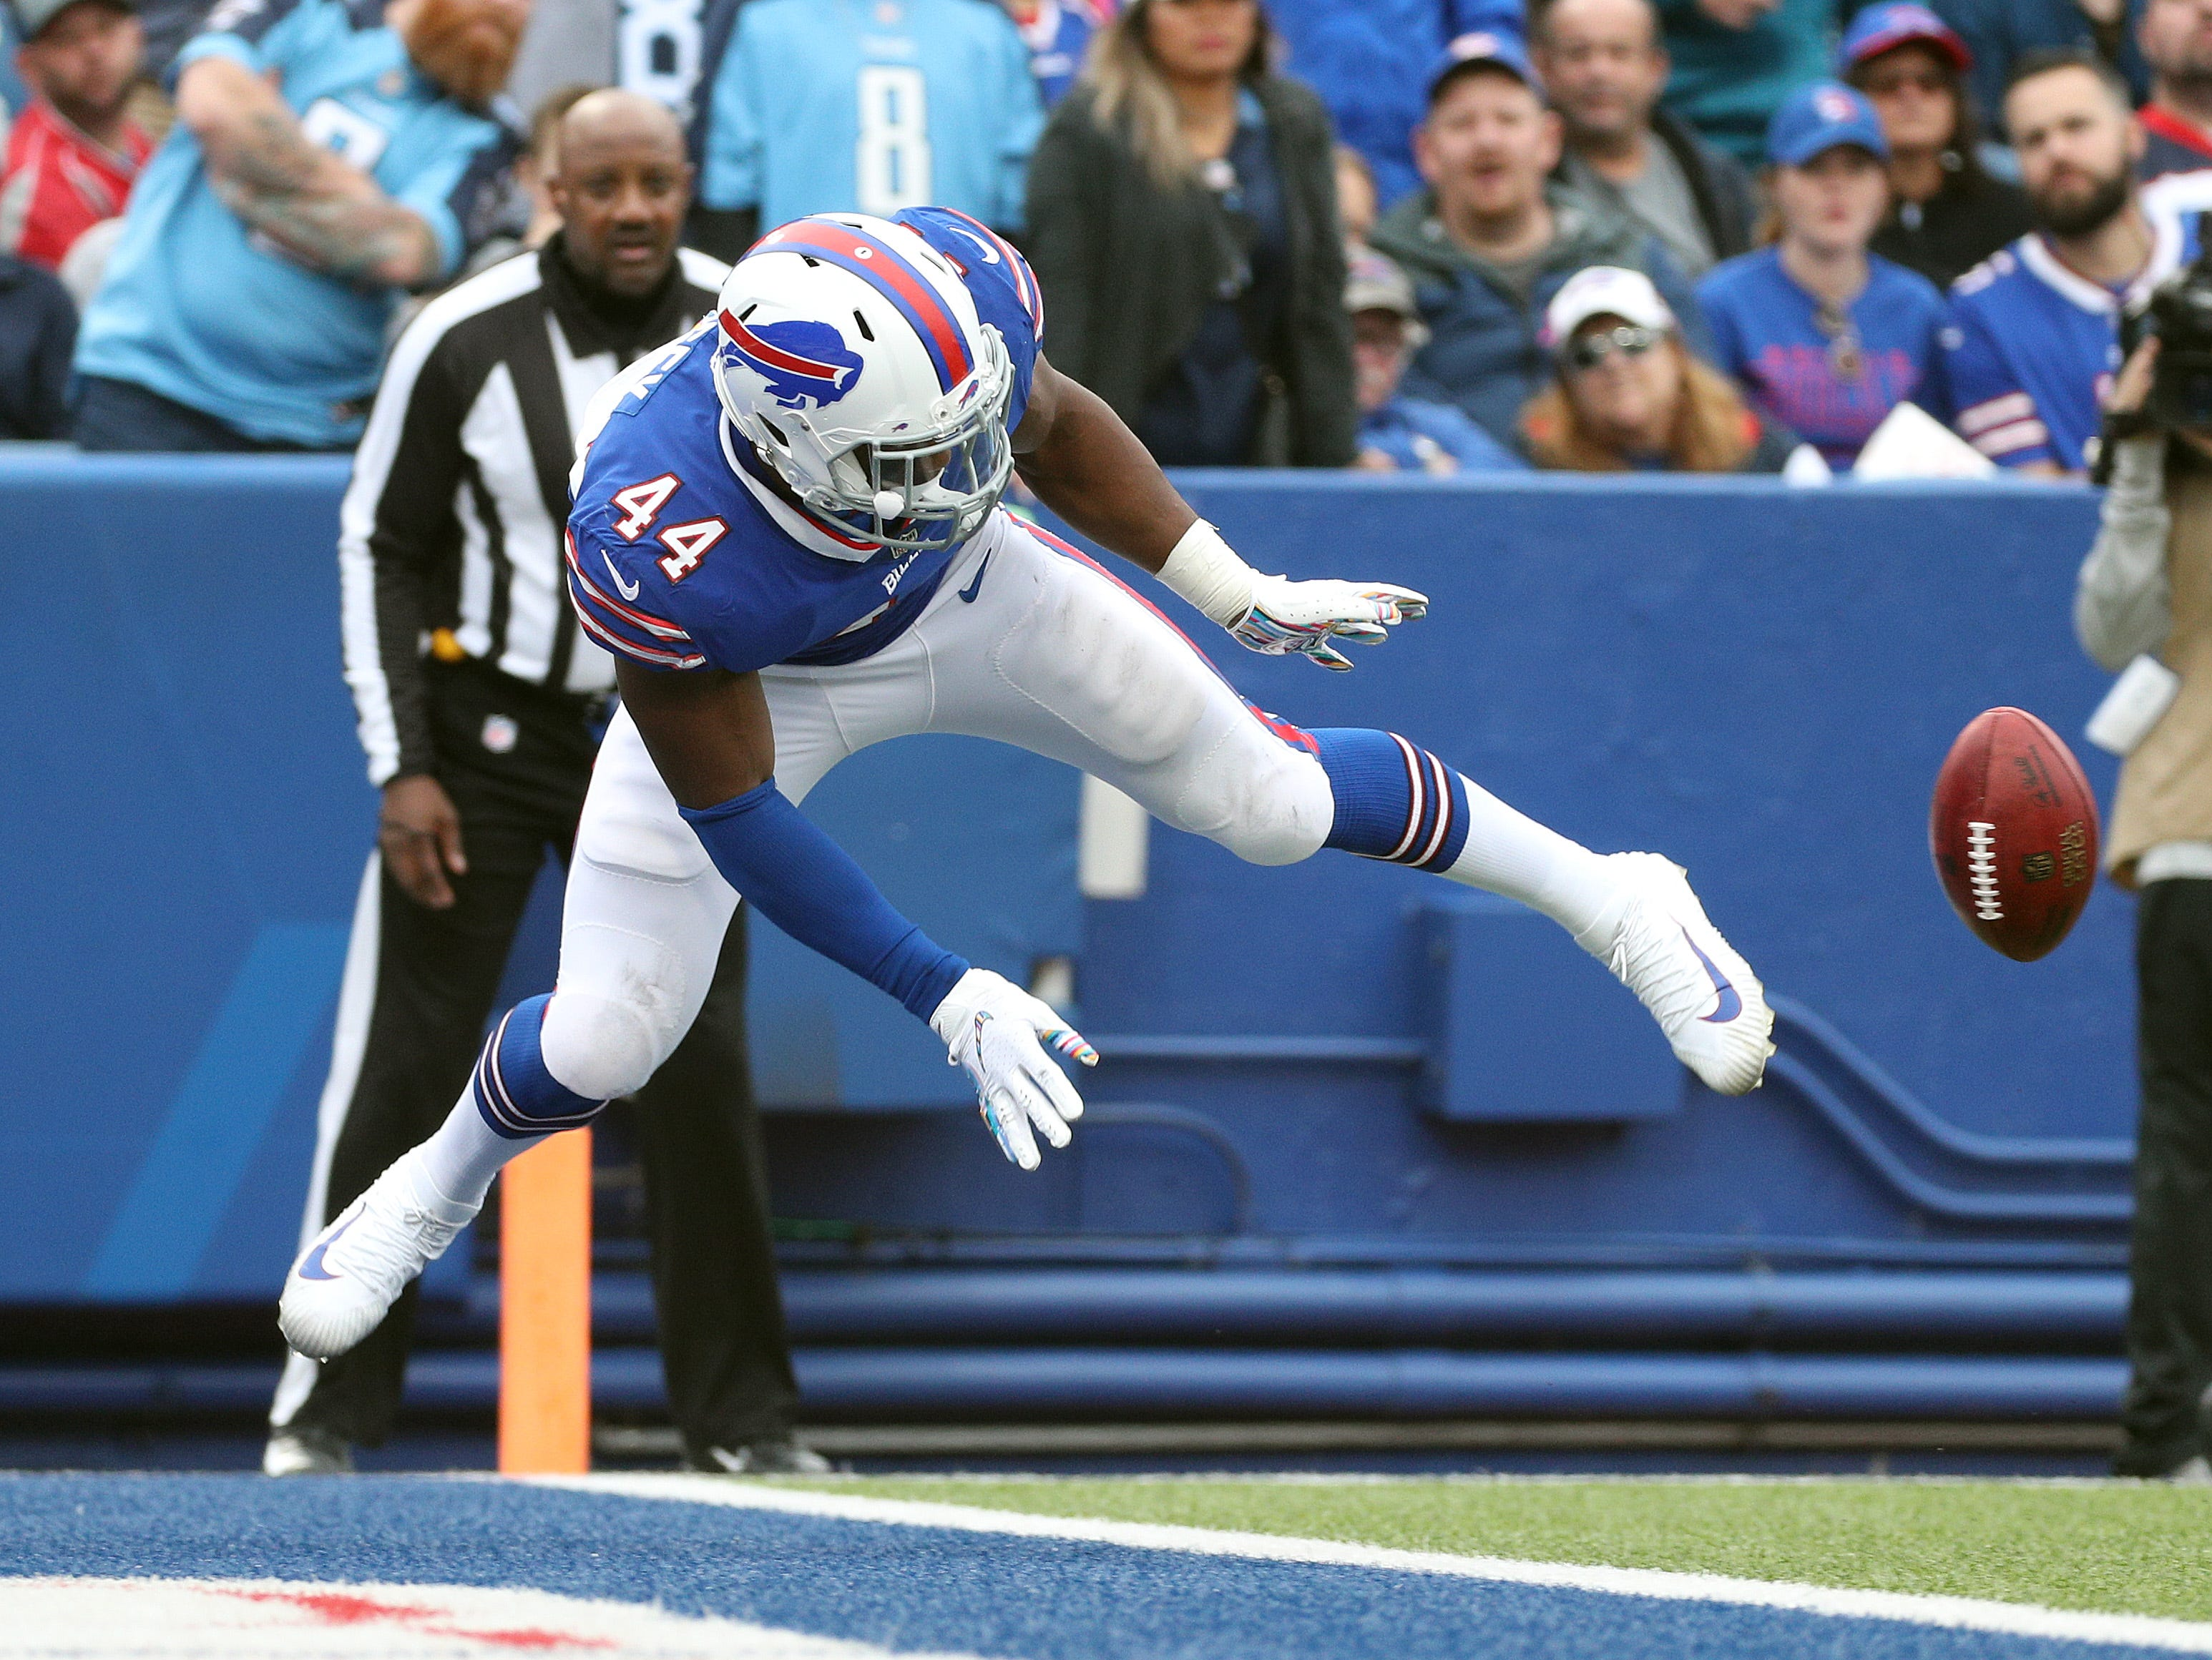 Bills Dean Lacy  leaps into the end zone to down the punt at the 5-yard-line.